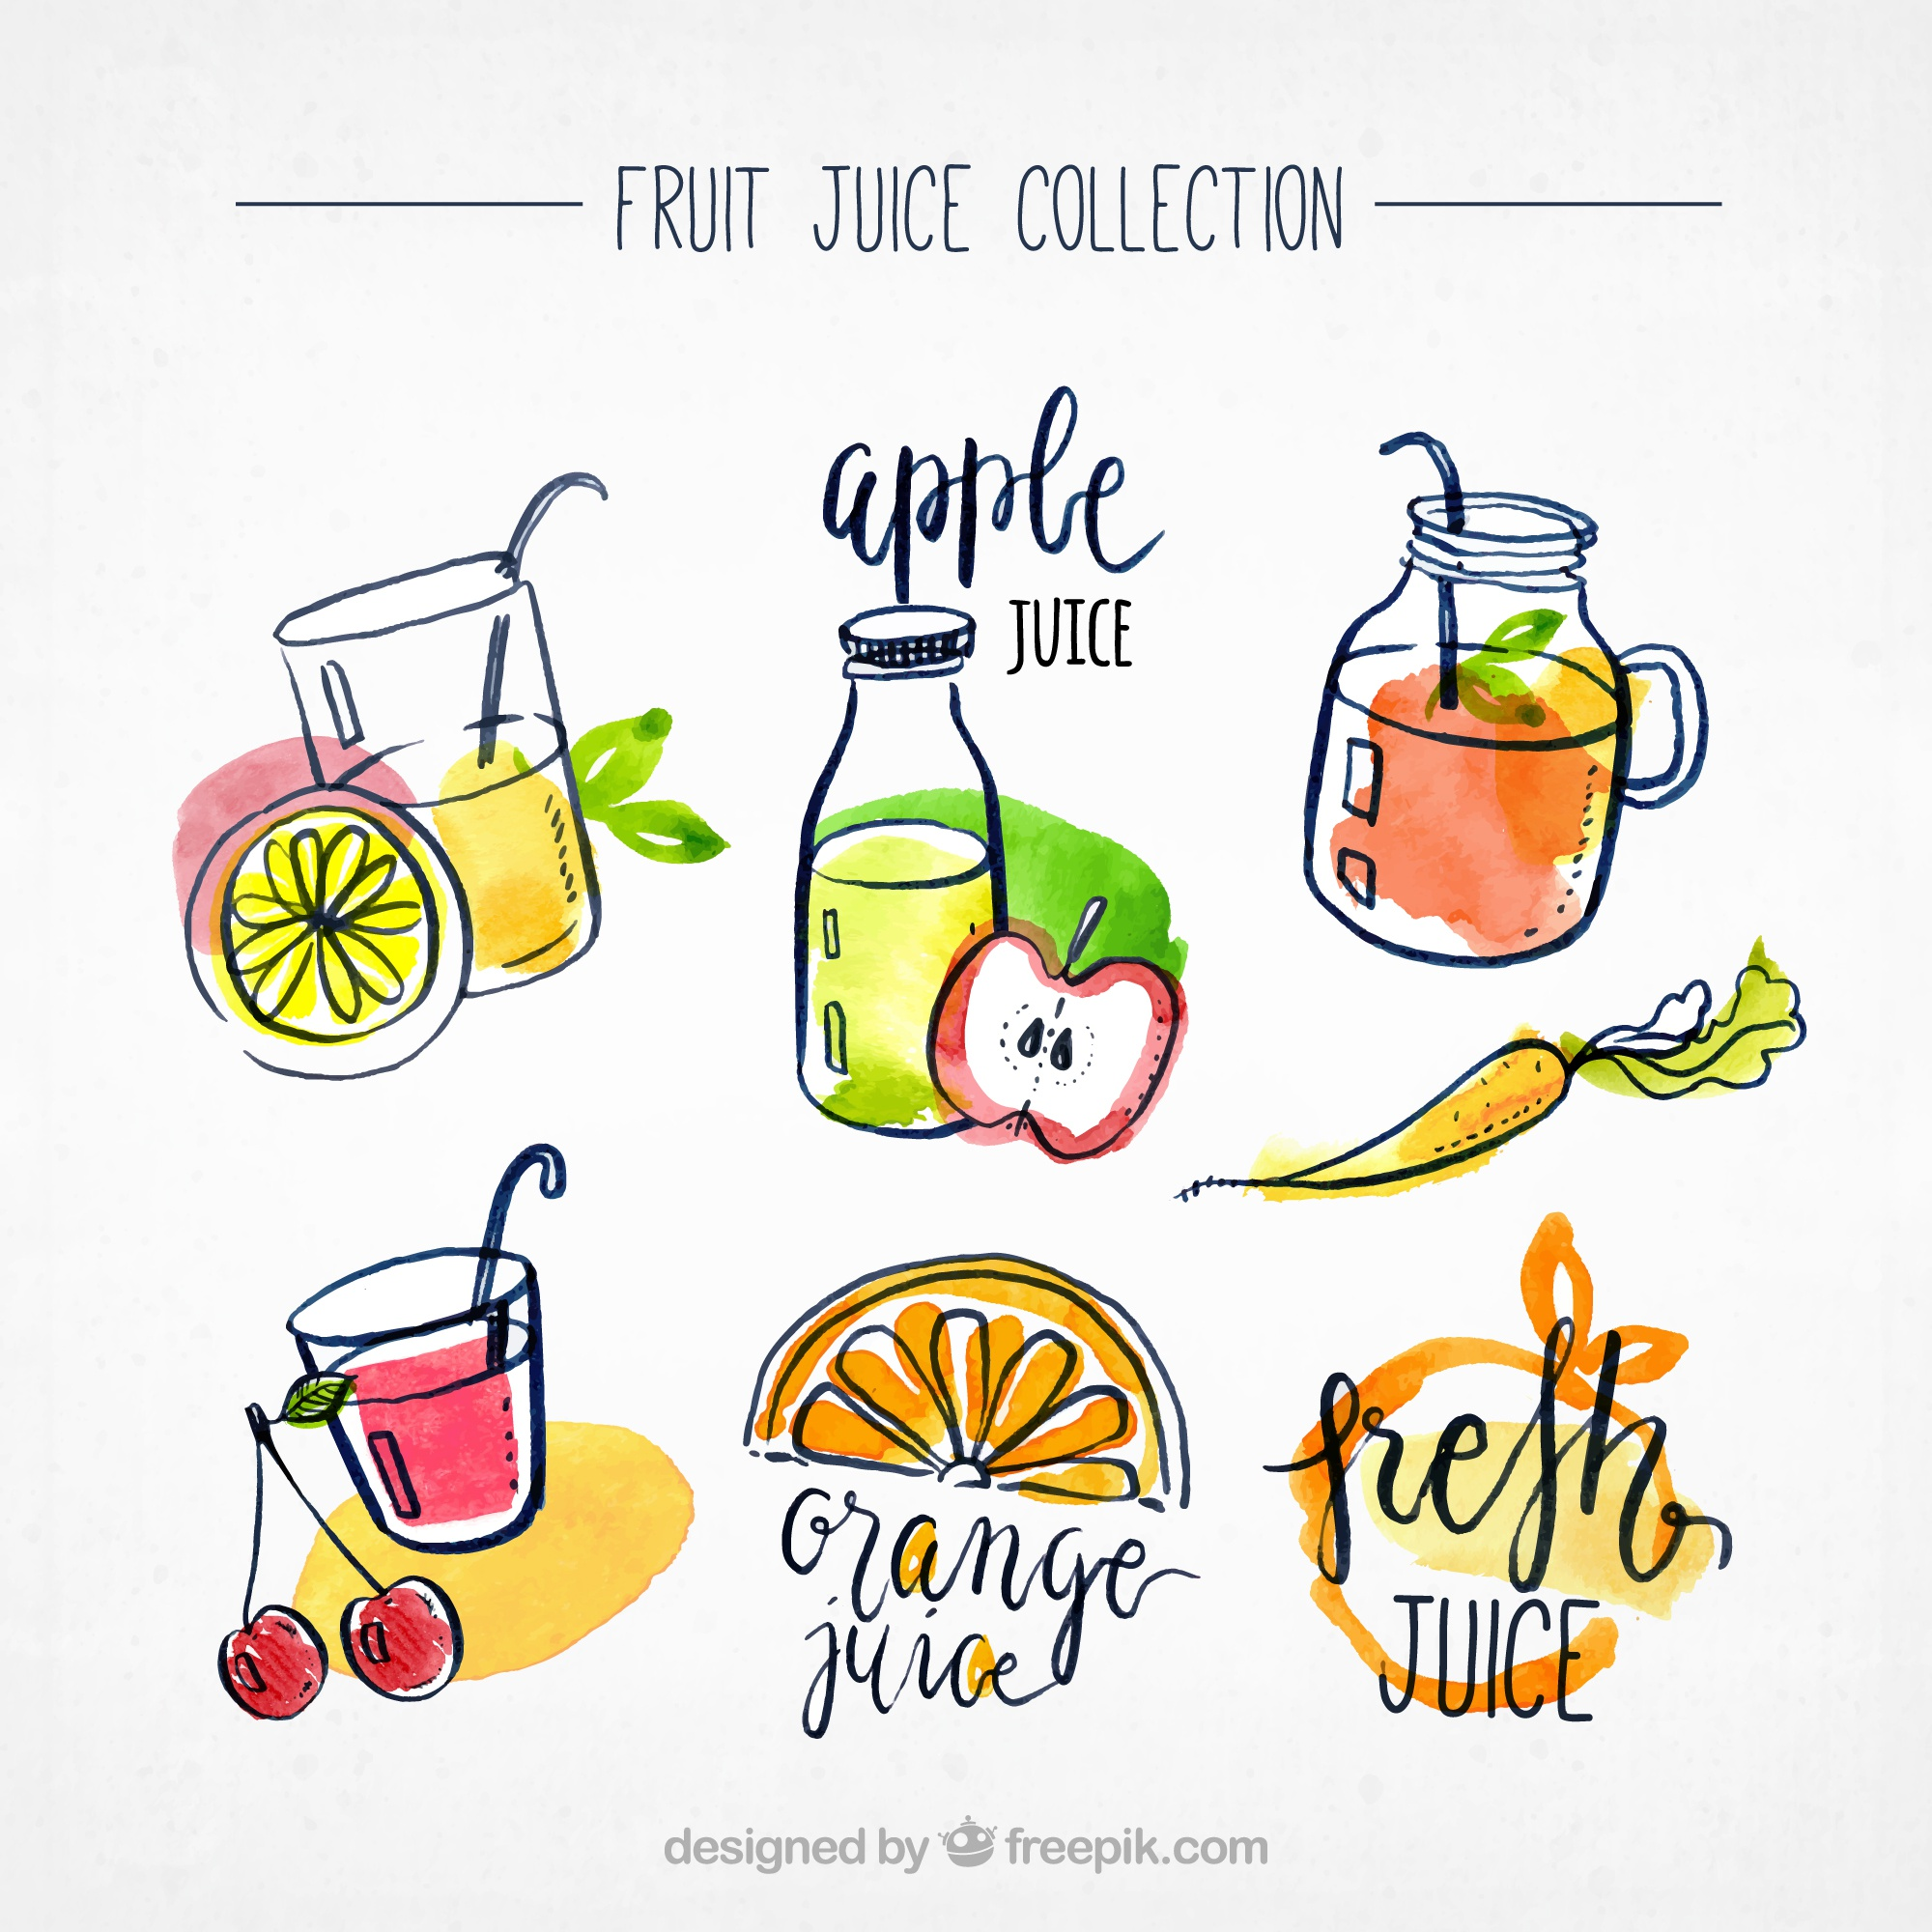 Fruit juice collection